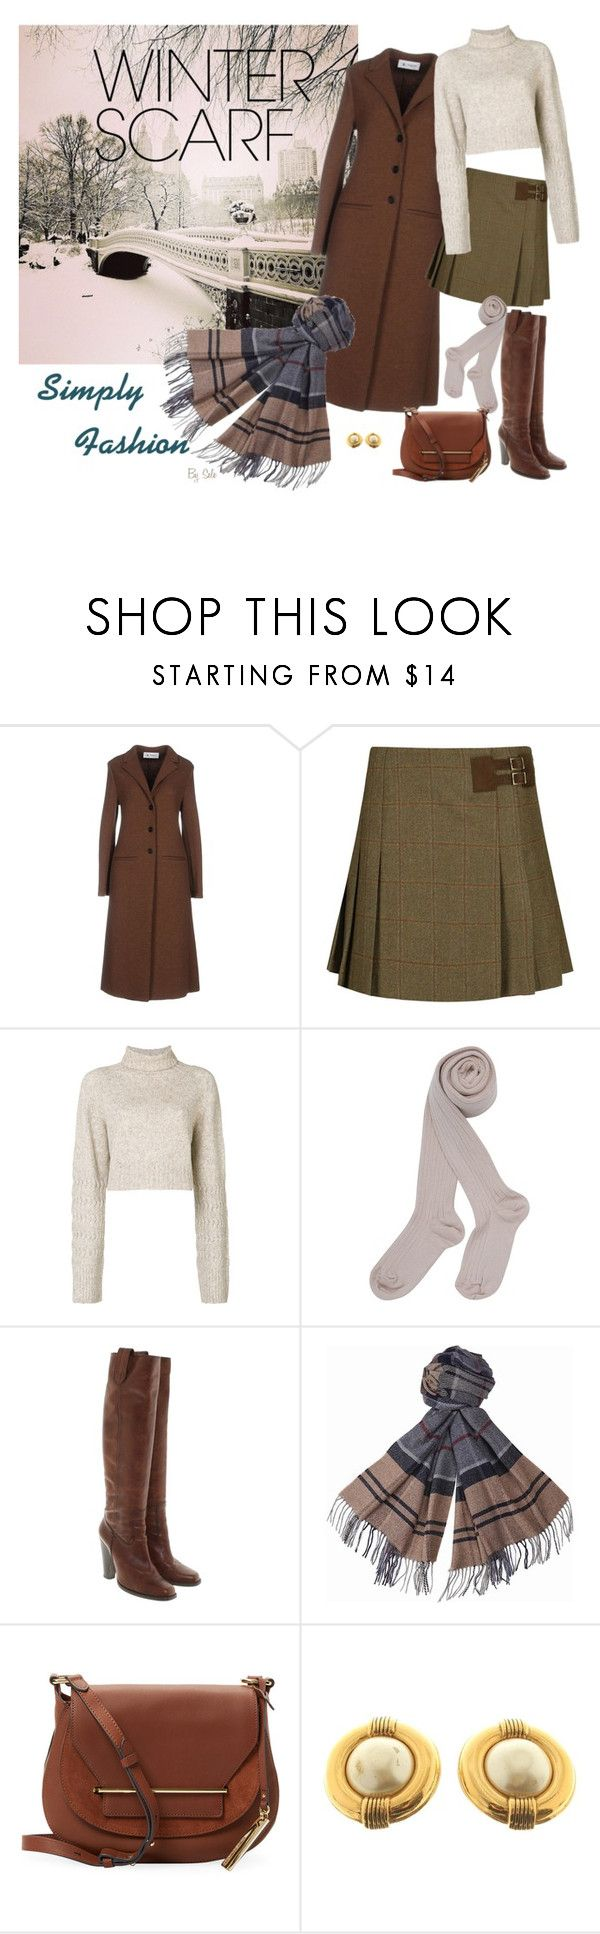 """""""Wrapper's Delight: Winter Scarf - Simply Fashion"""" by selene-cinzia ❤ liked on Polyvore featuring Barena, DUBARRY, Diesel, Barbara Bui, Barbour, Vince Camuto, Chanel and winterscarf"""